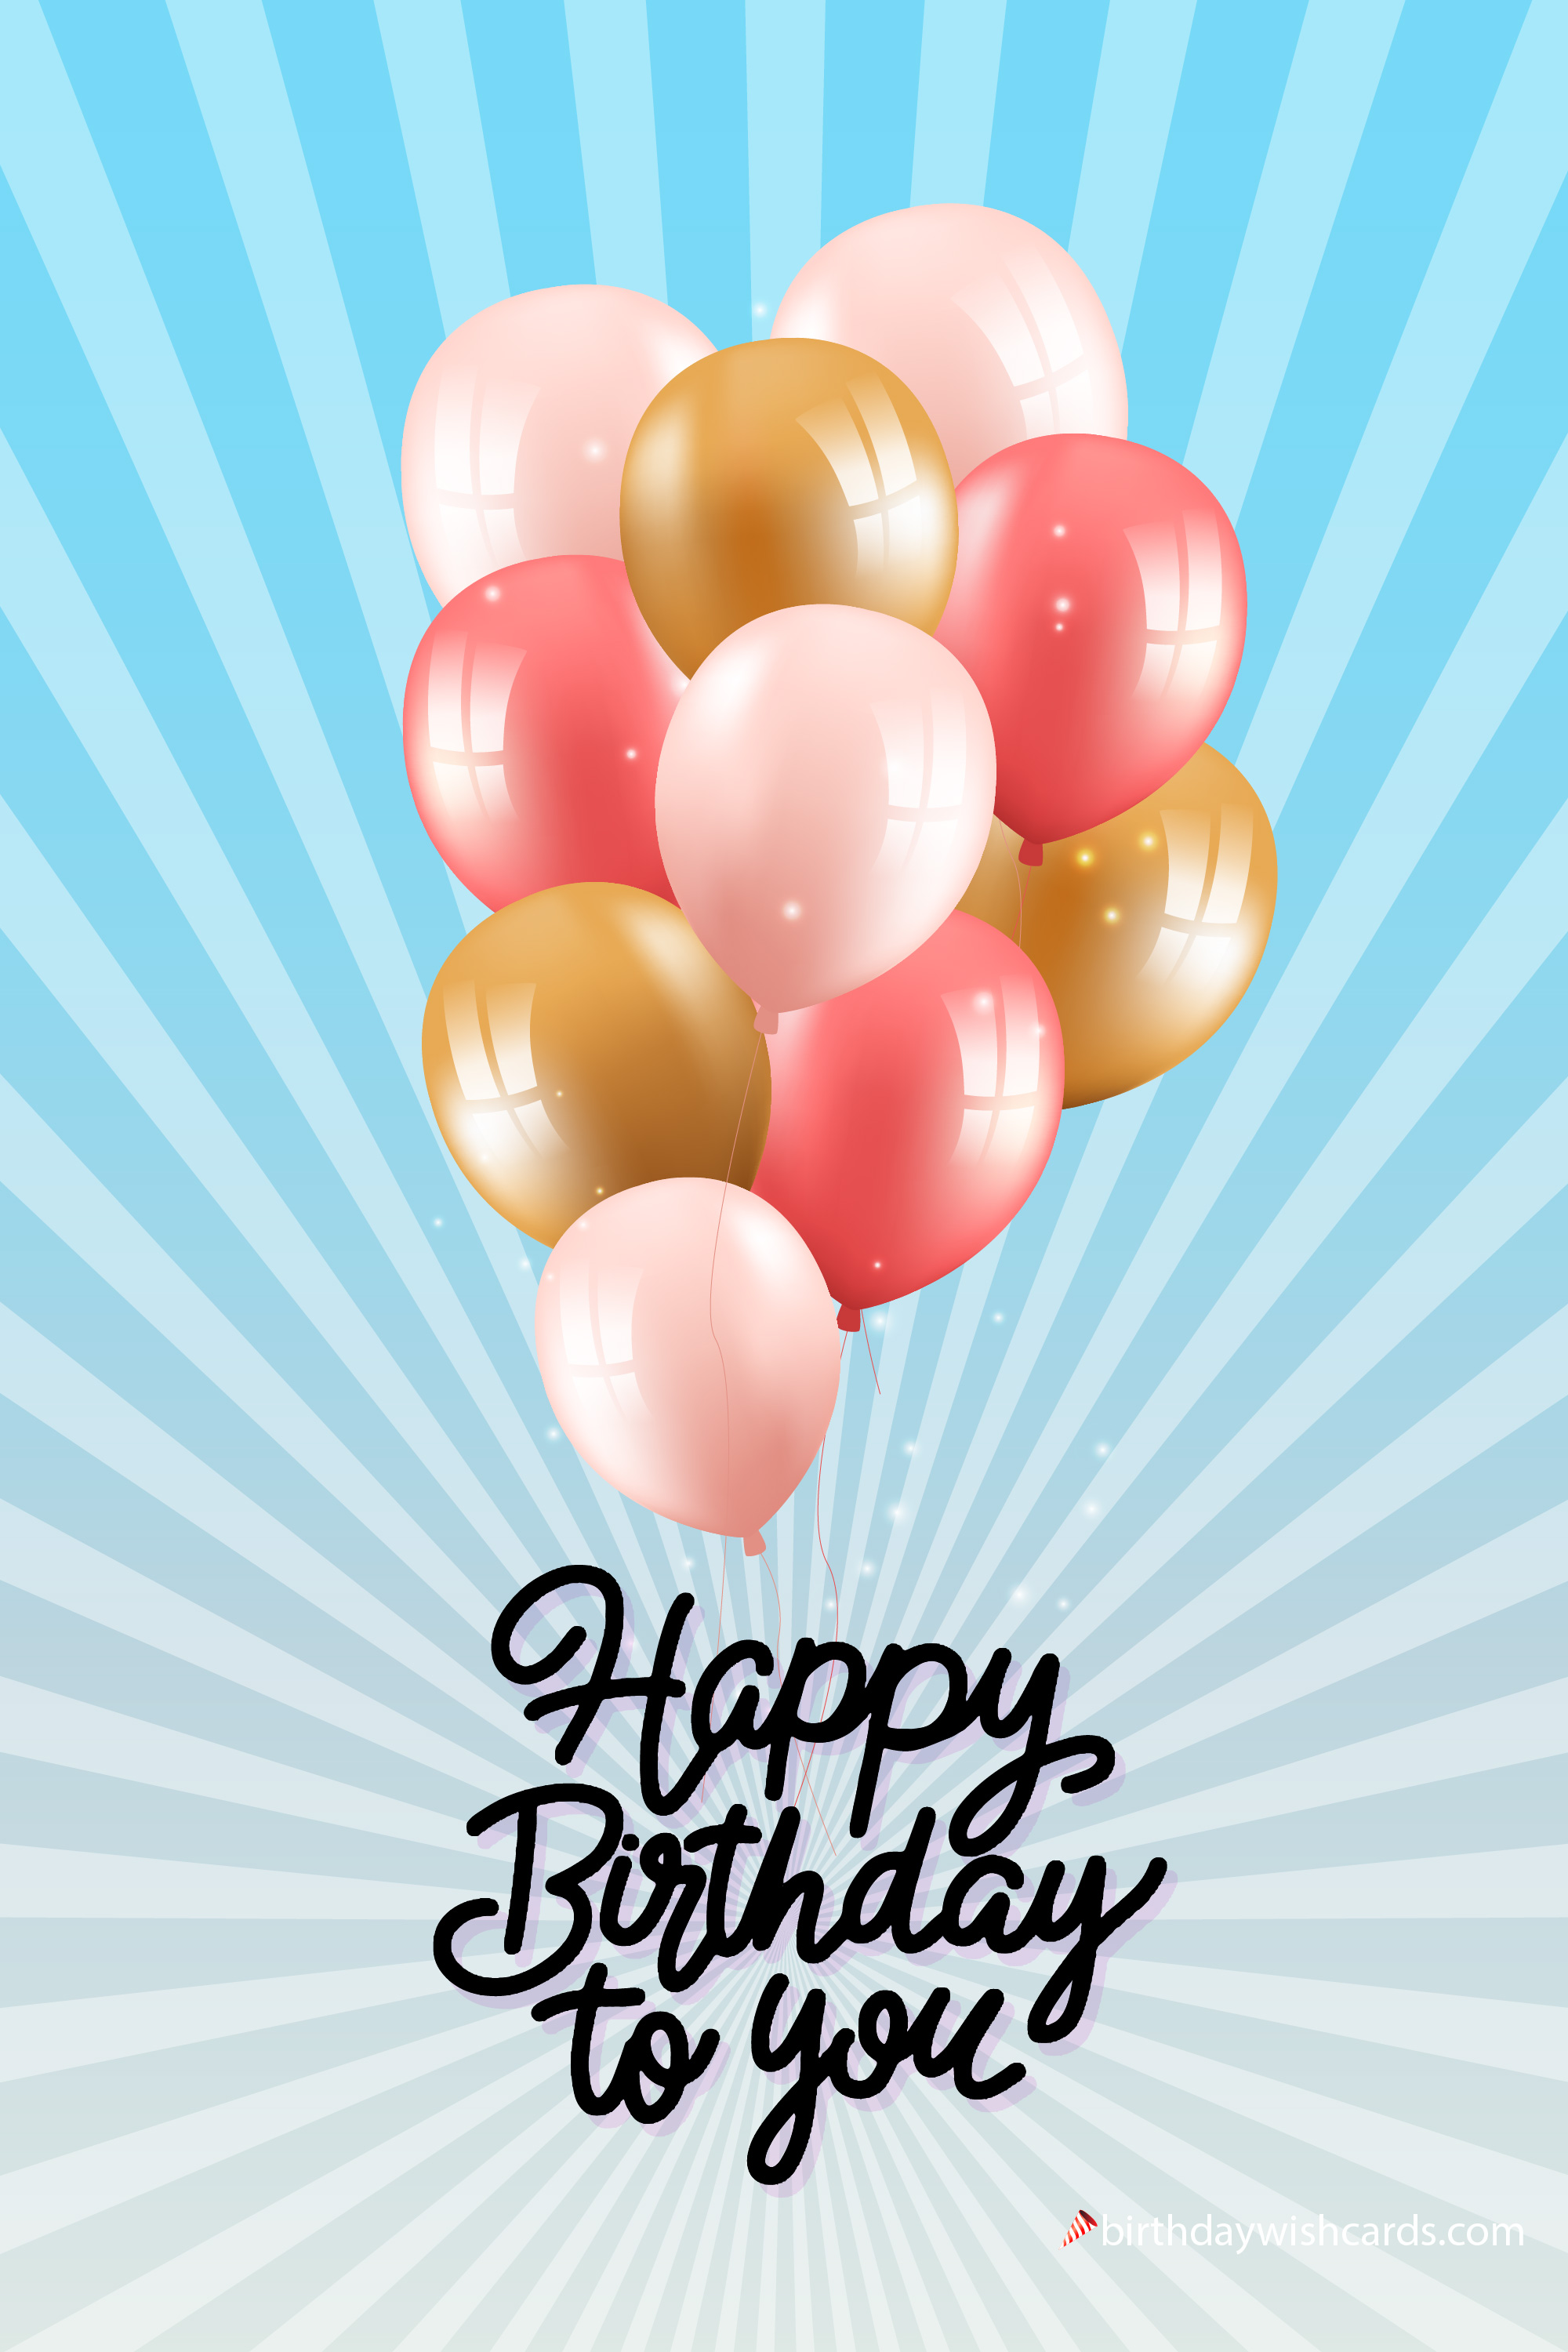 happy birthday to you awesome image